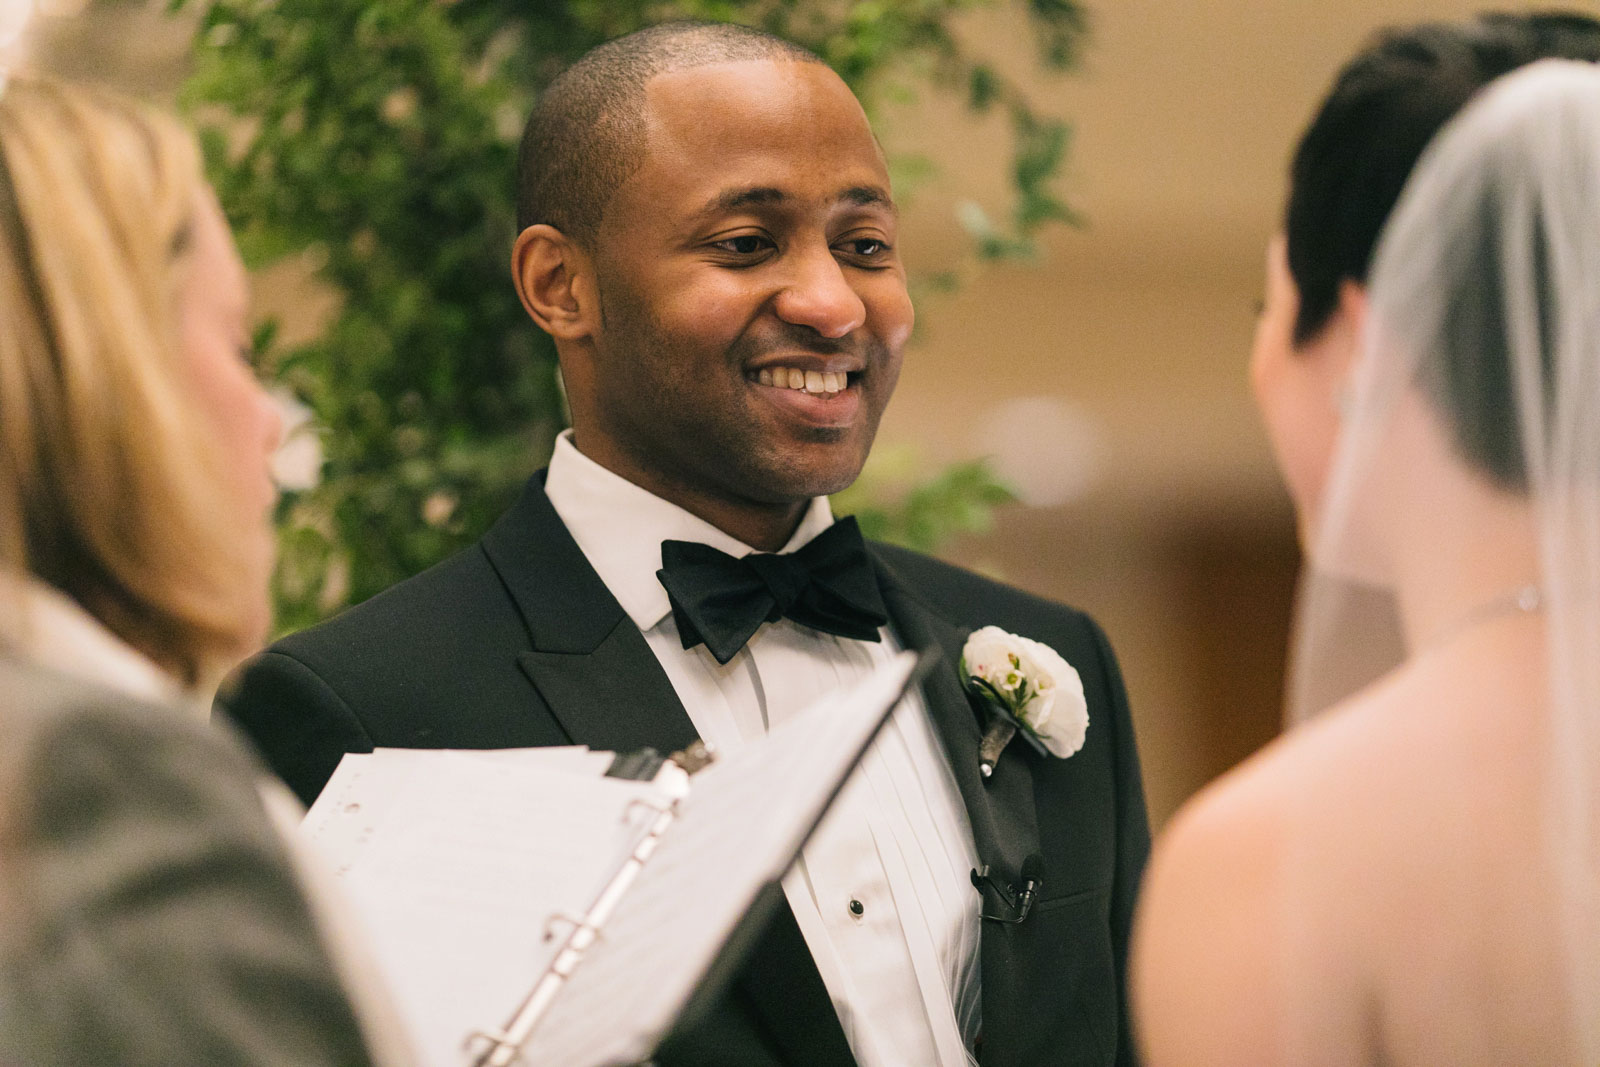 groom smiles at bride under chuppah during multicultural wedding ceremony at Ritz-Carlton Boston